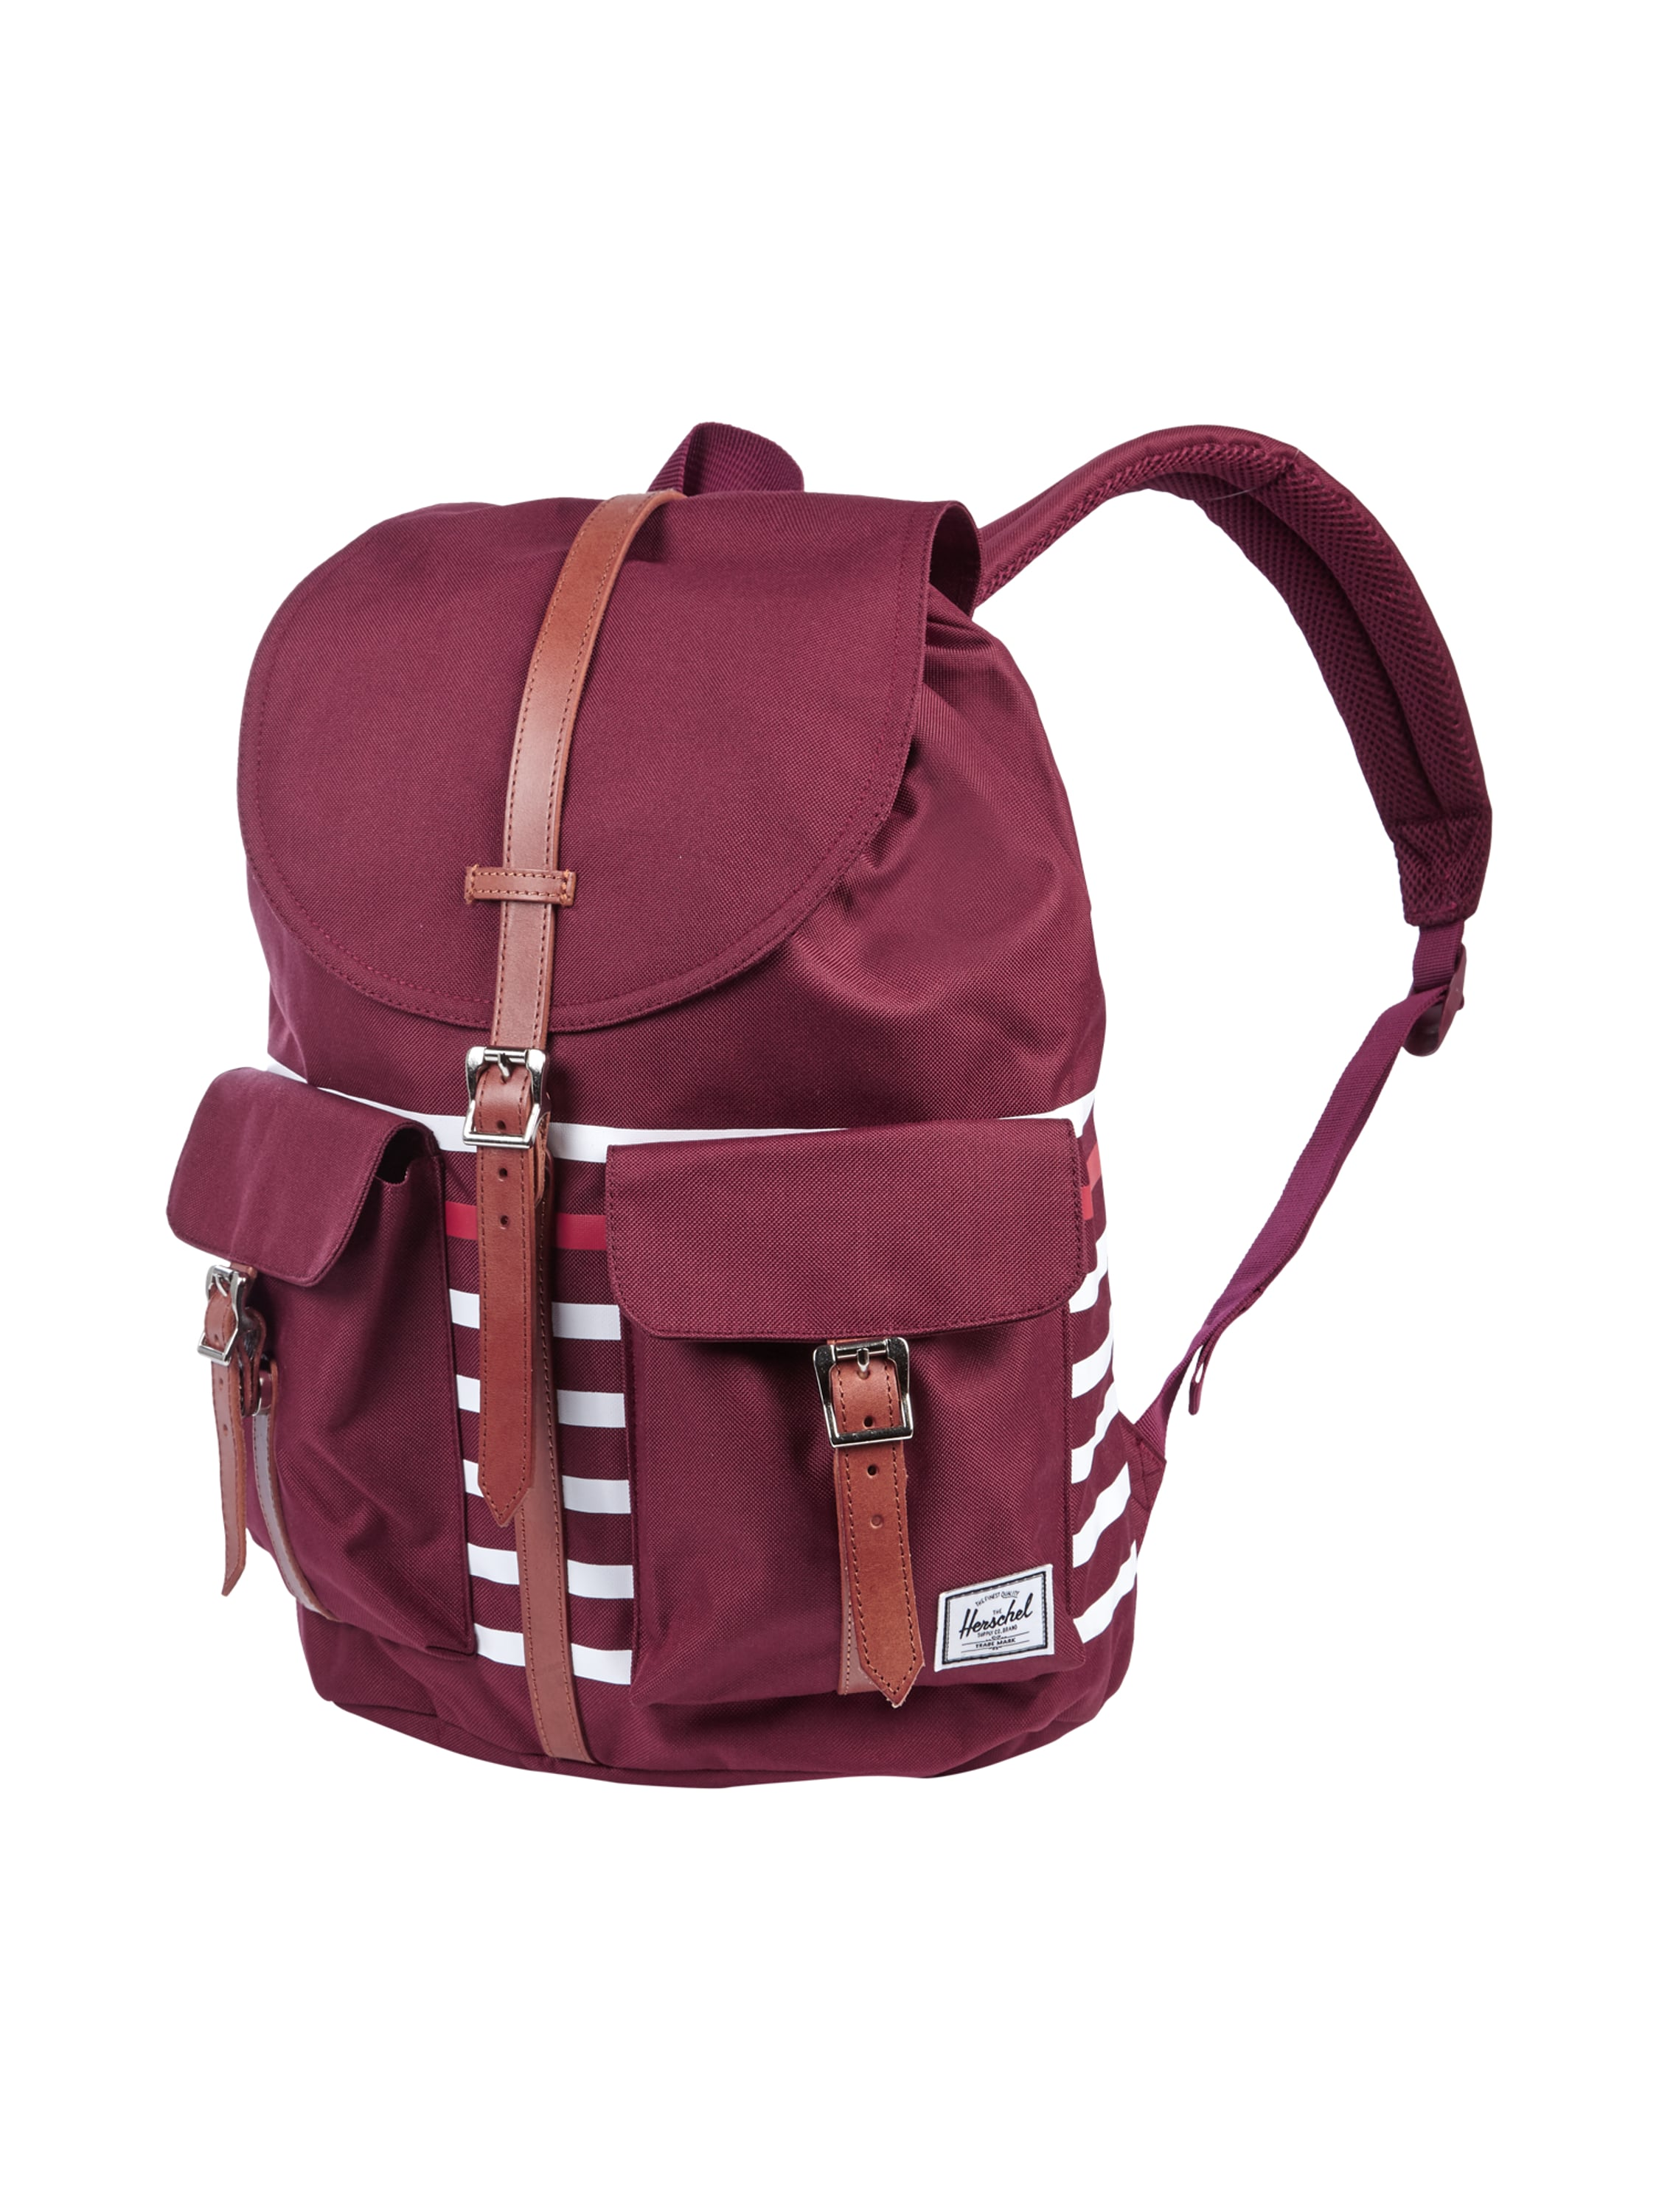 herschel rucksack mit laptopfach in rot online kaufen 9532532 p c at online shop. Black Bedroom Furniture Sets. Home Design Ideas